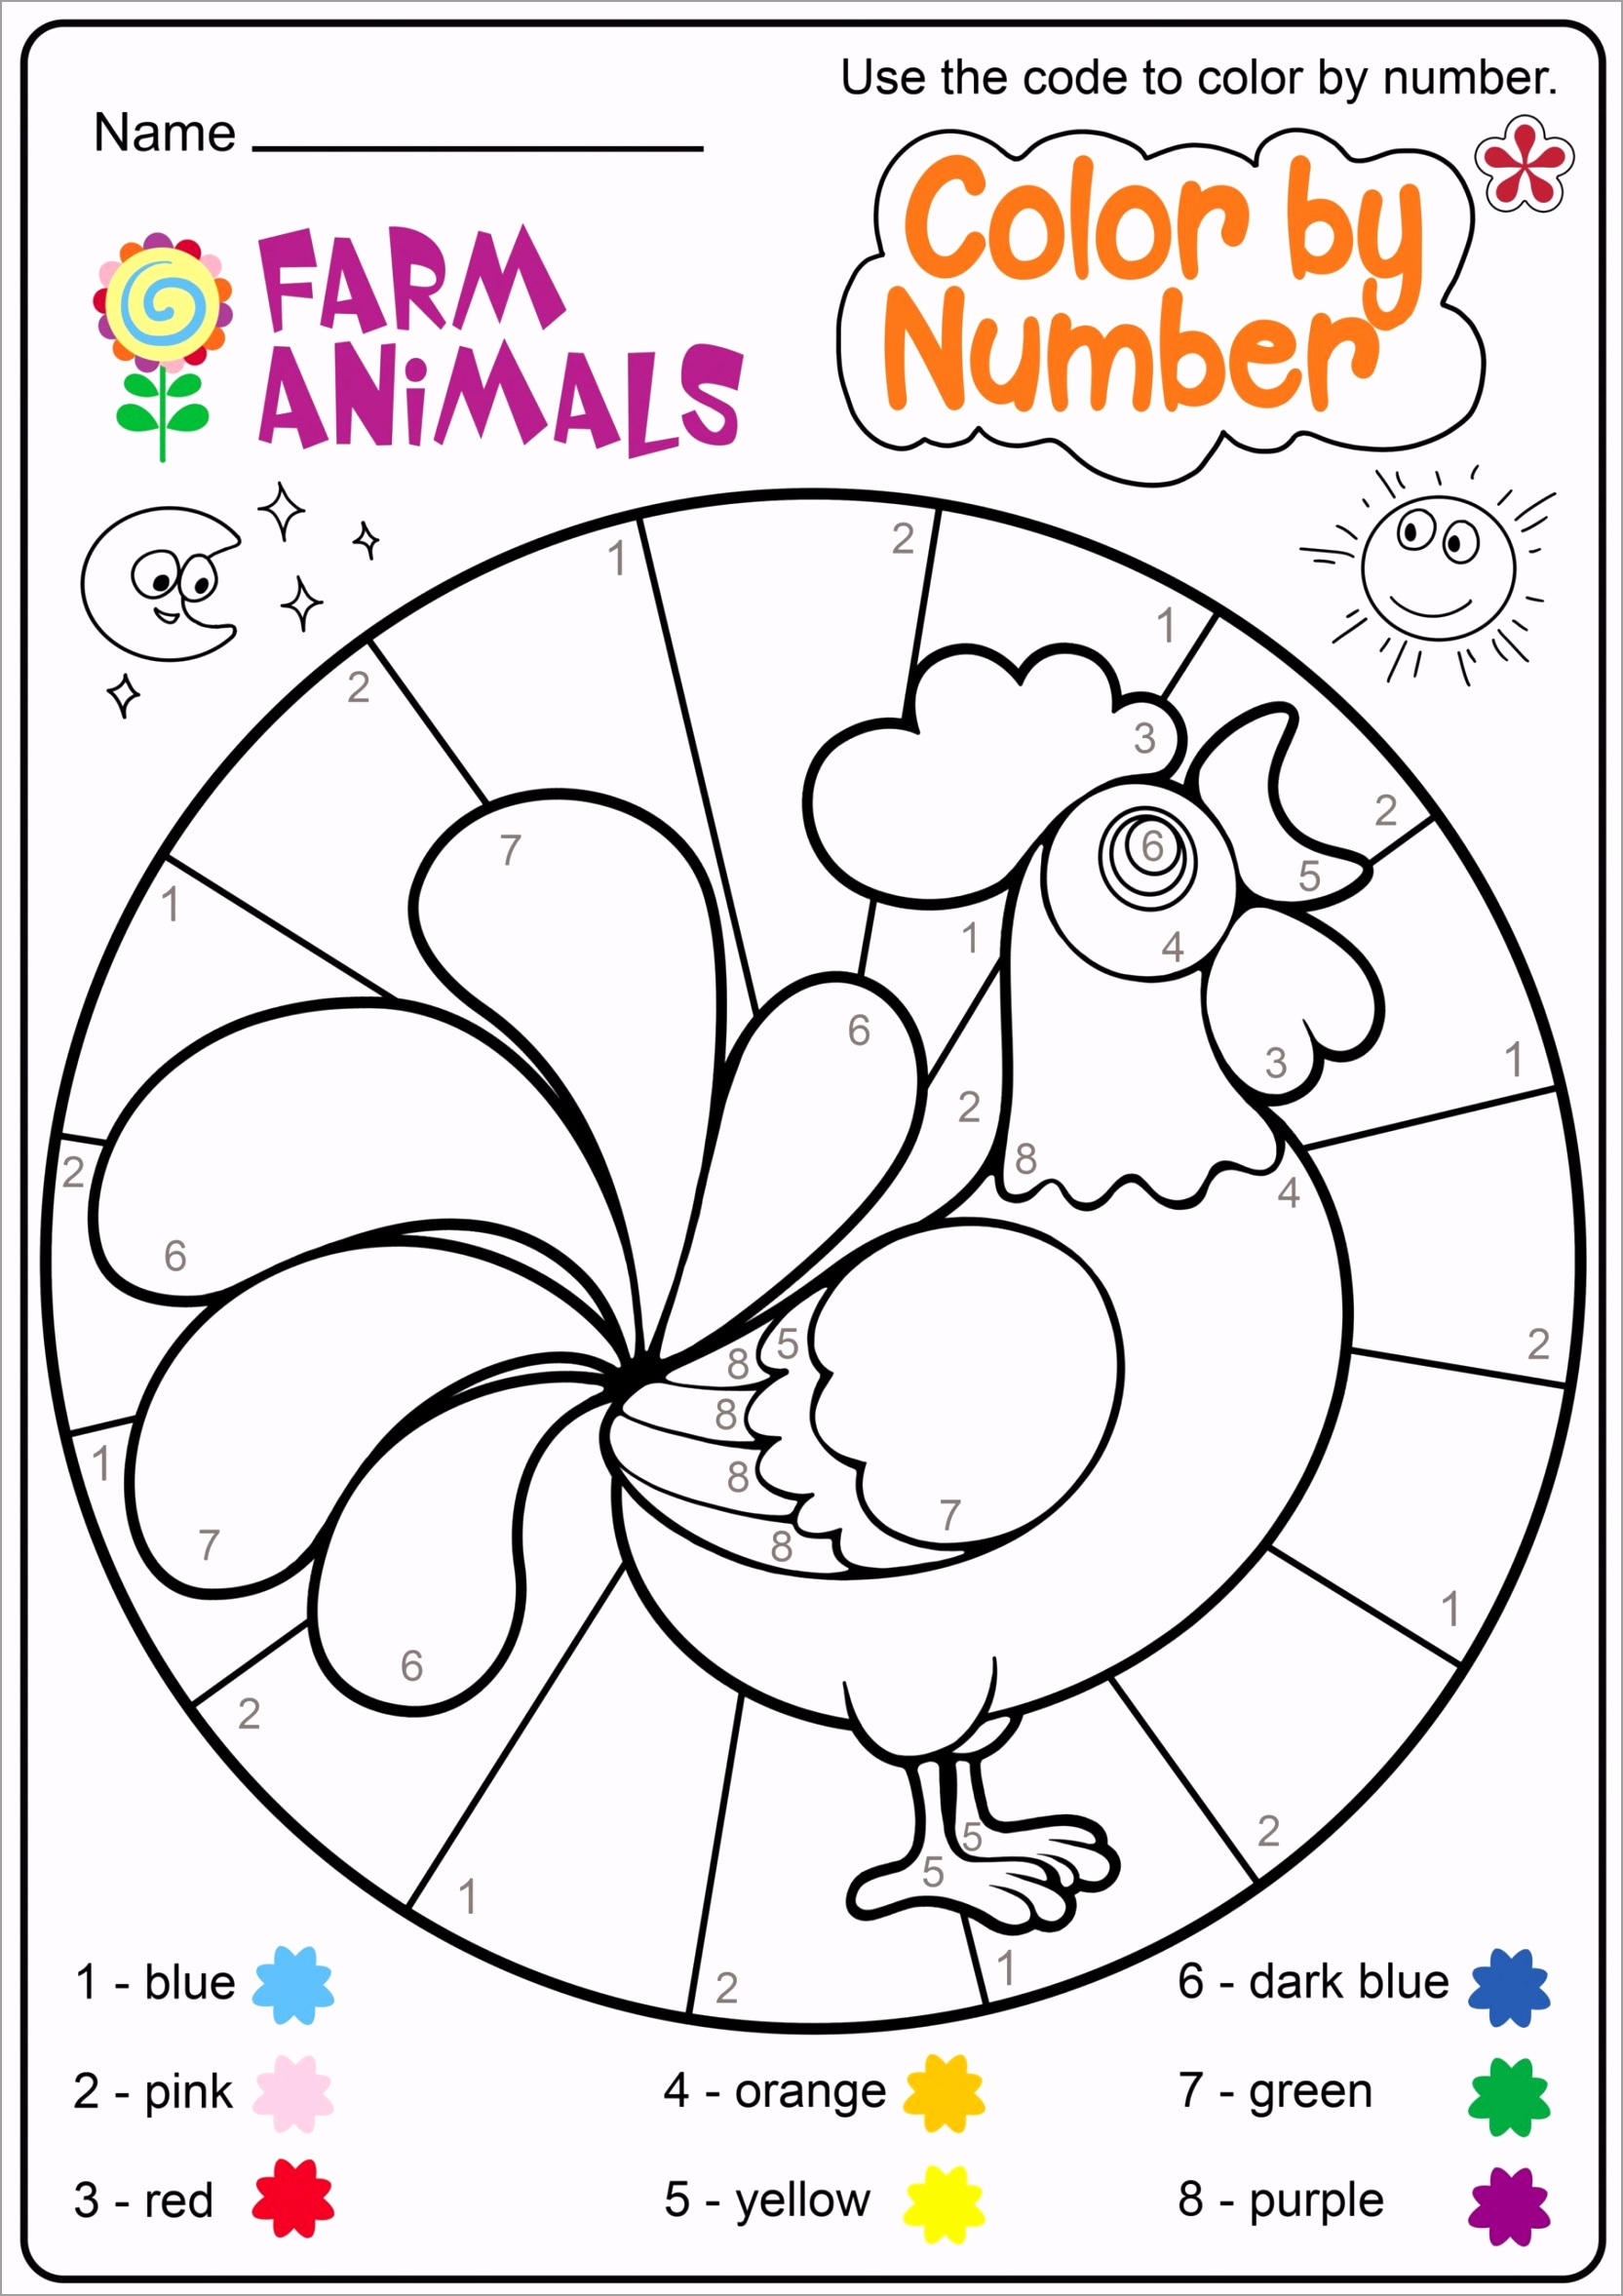 farm animal worksheet for free printable worksheets and zoo themed math color by number solve problem show steps problems toddler learning activities facts about multiplication scaled ipapw